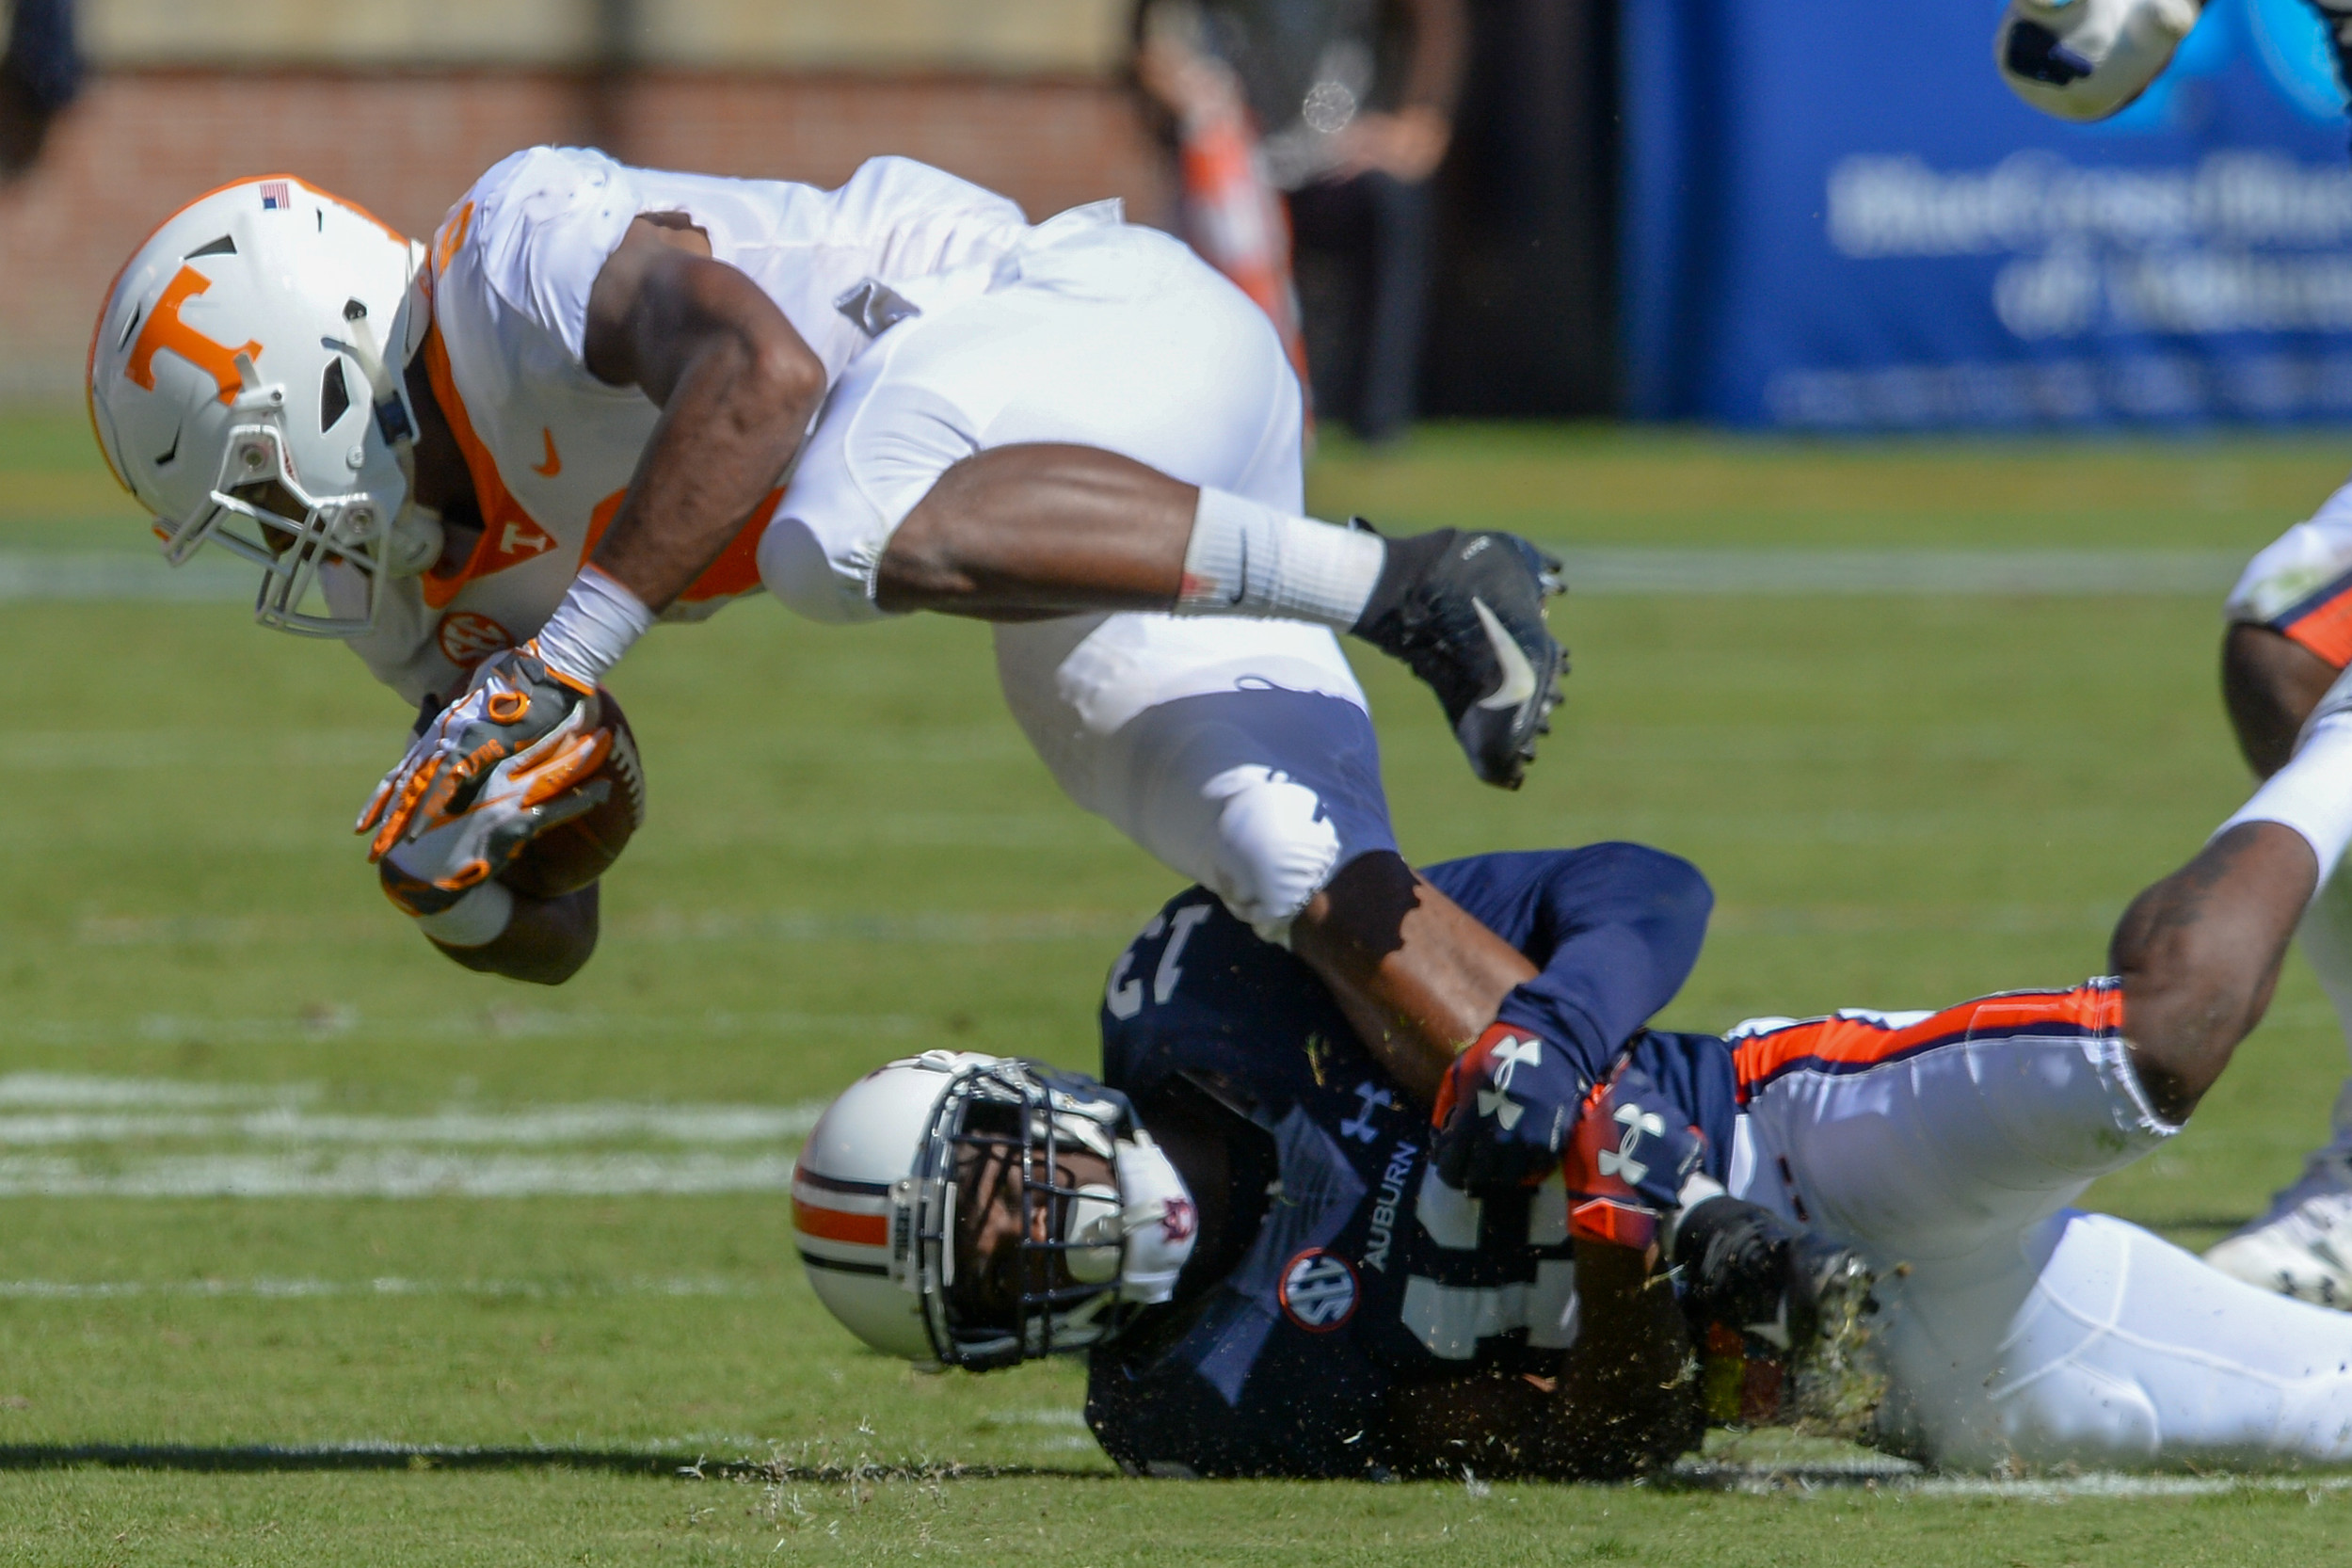 Tennessee Volunteers running back Ty Chandler (8) is. tackled by Auburn Tigers defensive back Javaris Davis (13) during the first half of Saturday's game, at Jordan-Hare Stadium in Auburn, AL. Daily Mountain Eagle -  Jeff Johnsey